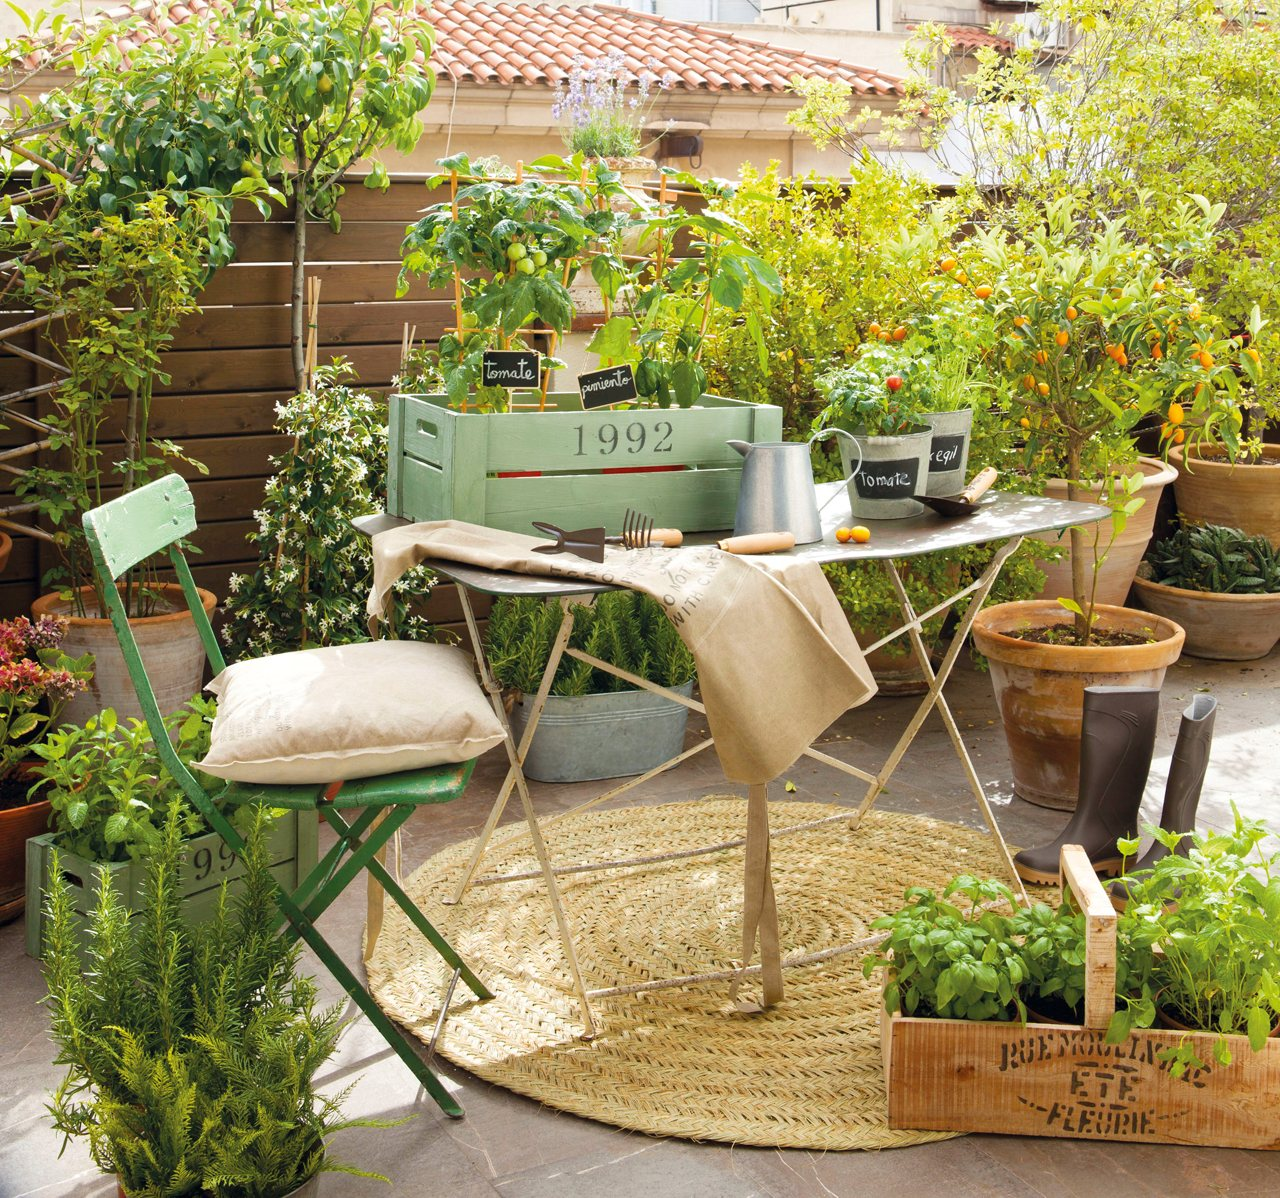 Como Decorar Un Patio Grande Ideas Para Decorar Una Terraza En Verano